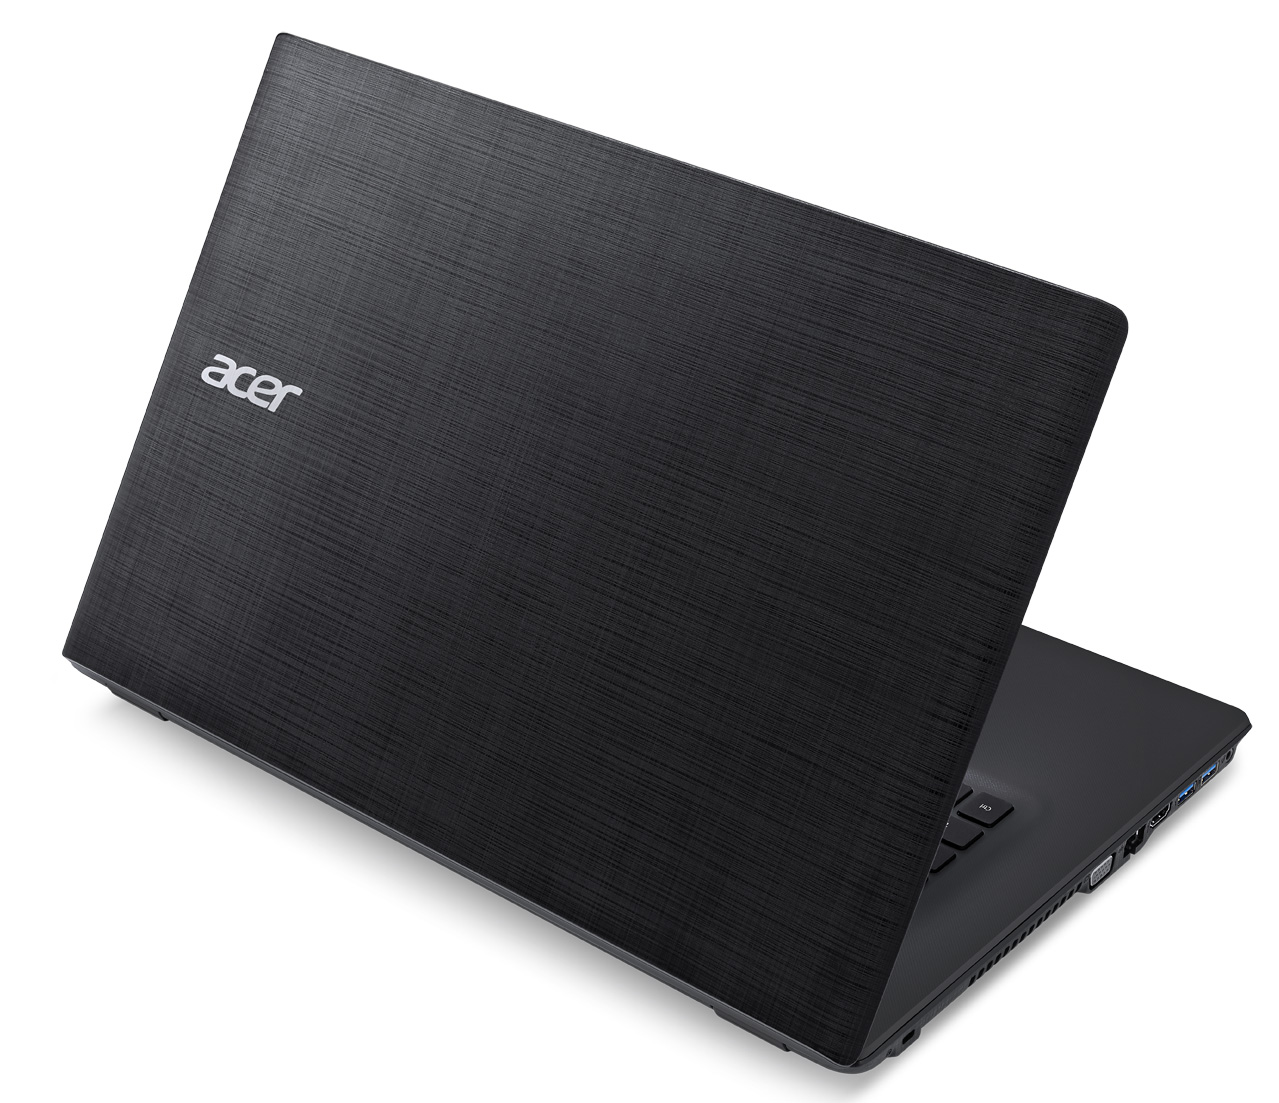 Acer TravelMate P278-MG-78RB, PC portable 17 pouces Pro SSD 256 i7 940M 969€